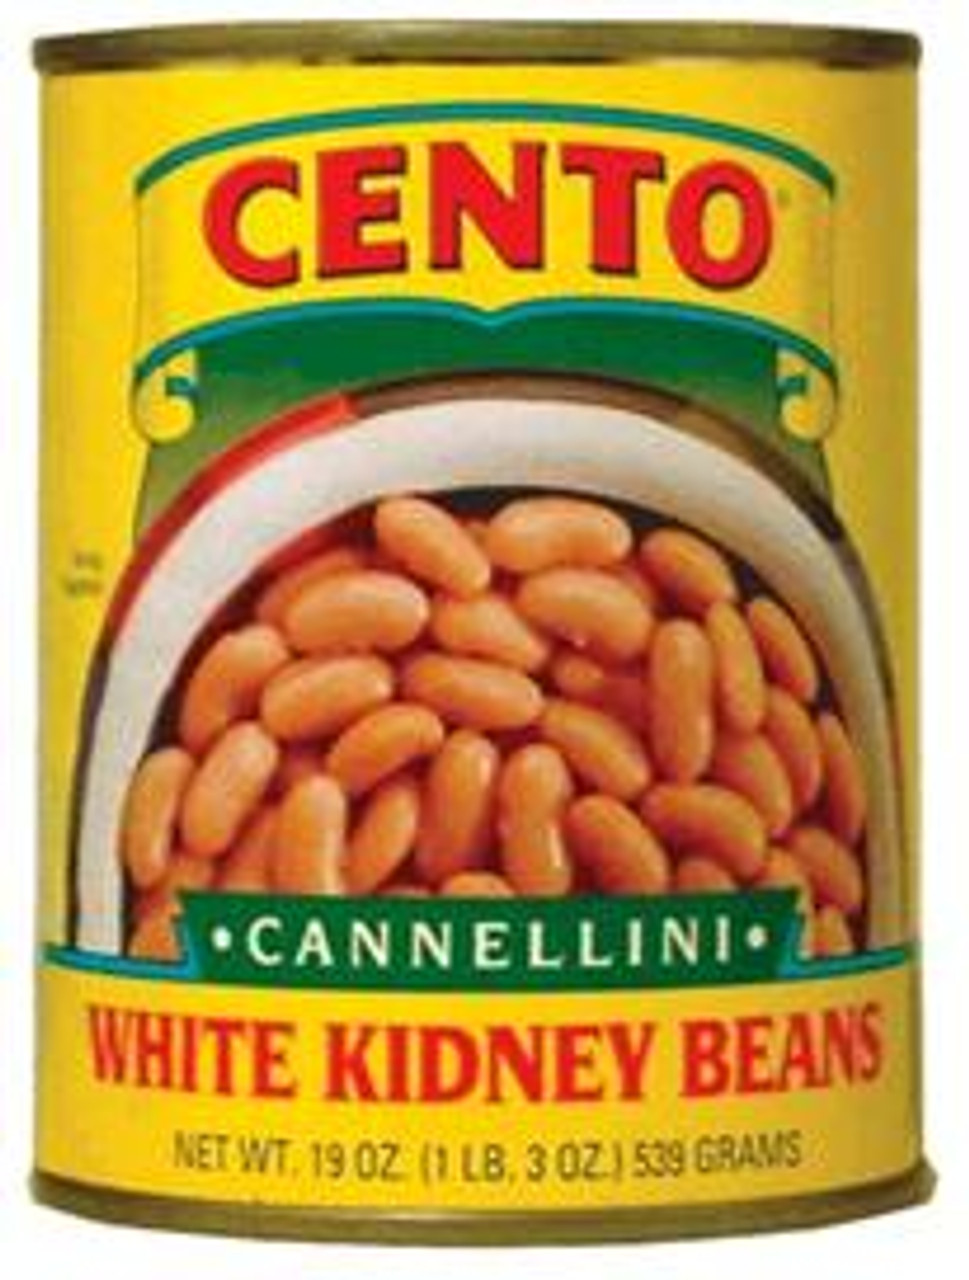 Cannellini (White Kidney Beans)